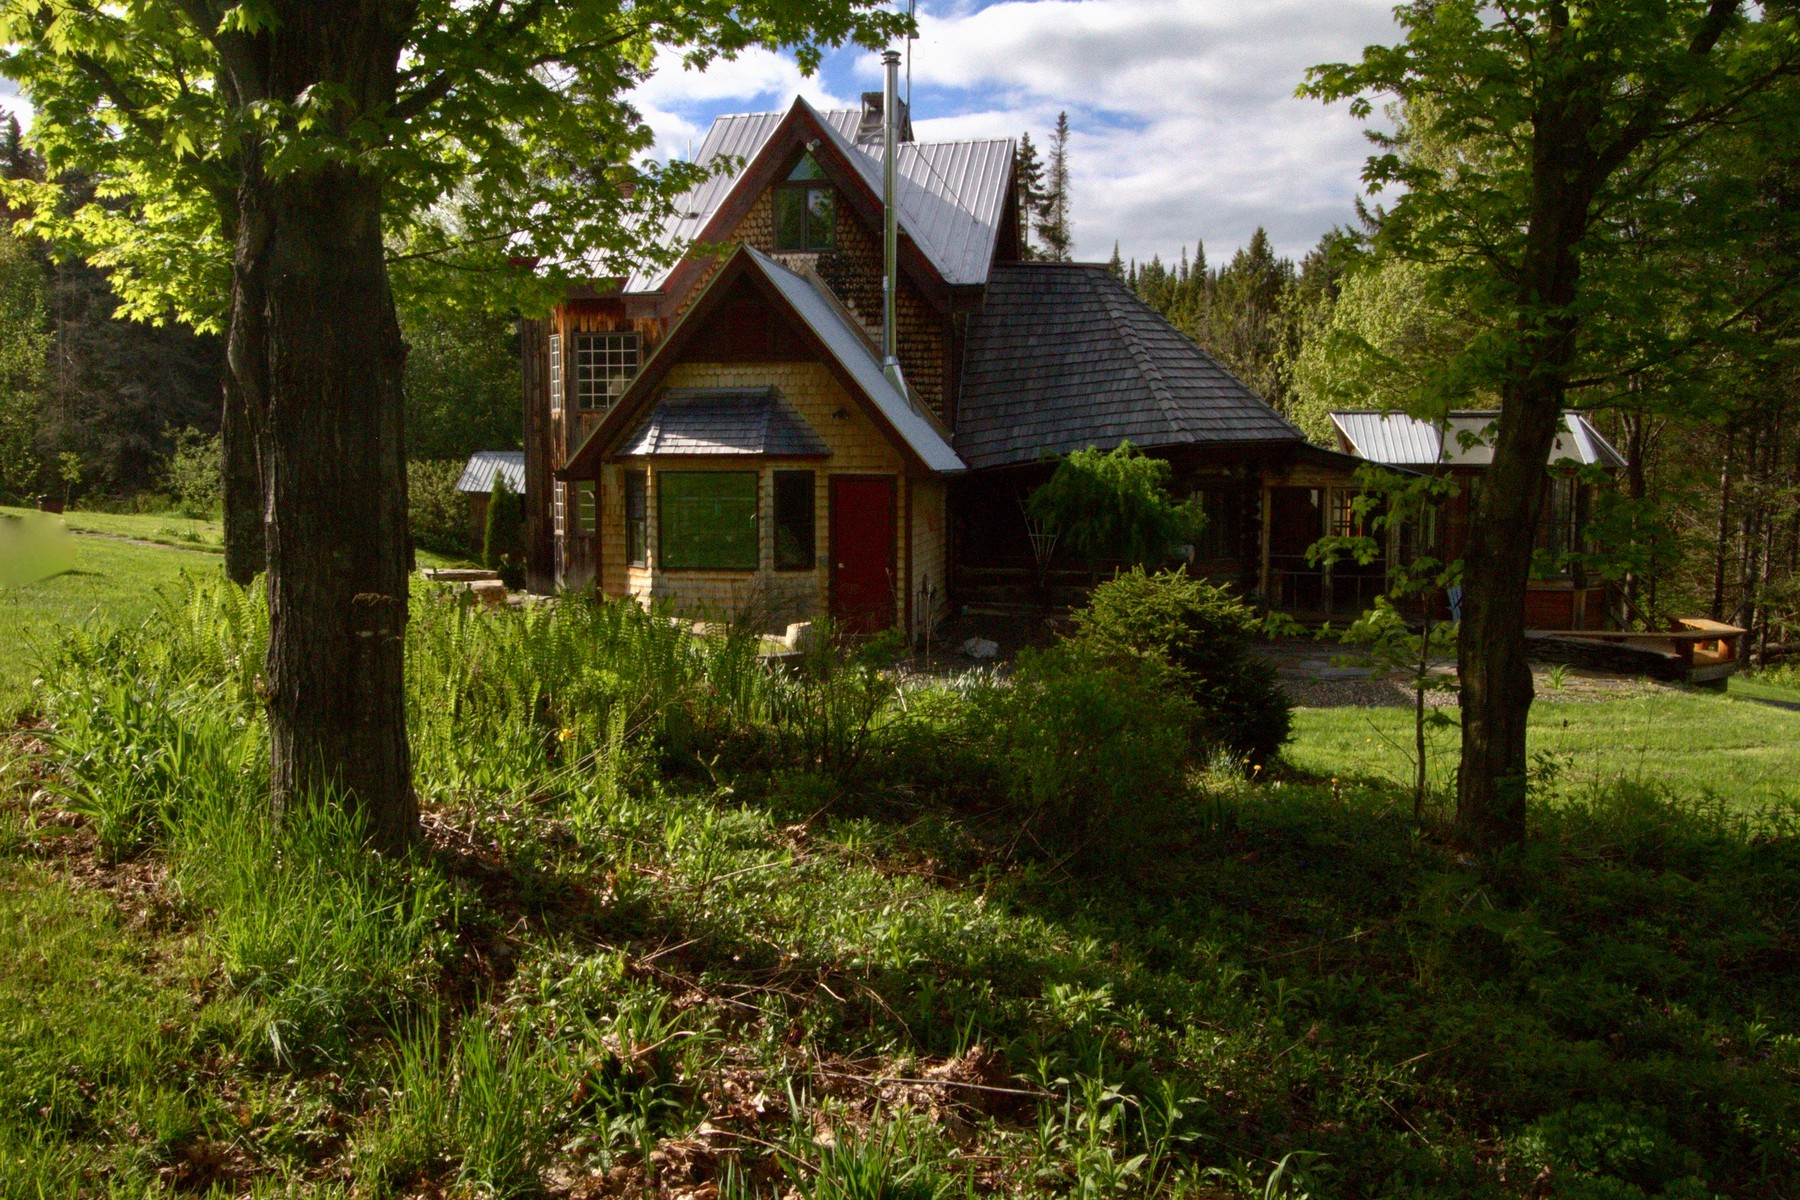 single family homes for Sale at 1989 Cabot Plains Road, Cabot 1989 Cabot Plains Rd Cabot, Vermont 05647 United States